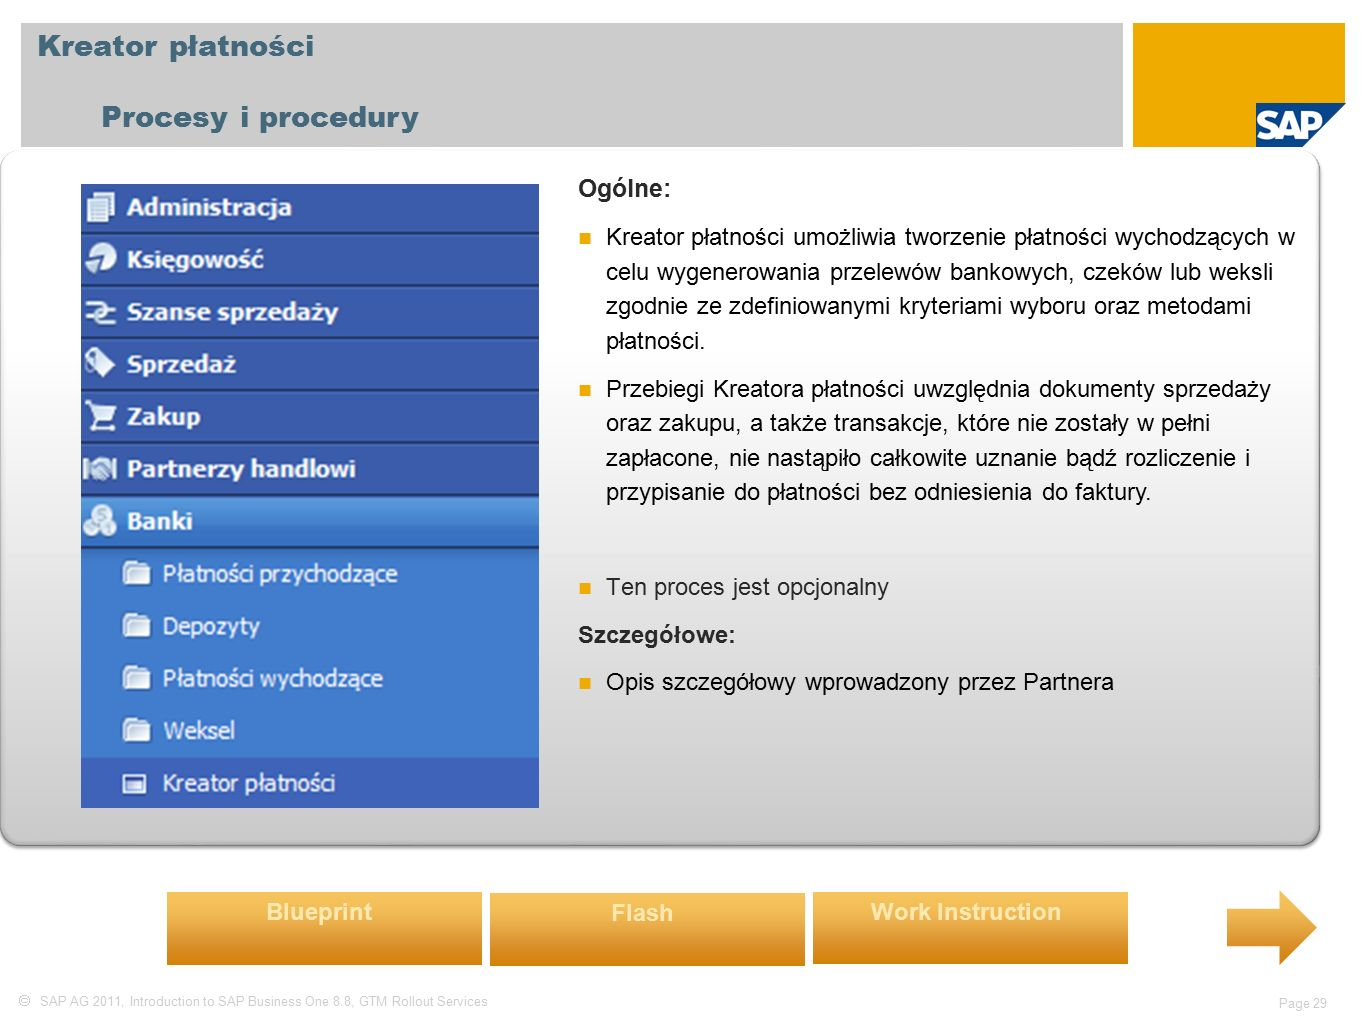  SAP AG 2011, Introduction to SAP Business One 8.8, GTM Rollout Services Page 29 Kreator płatności Procesy i procedury Ogólne: Kreator płatności umoż